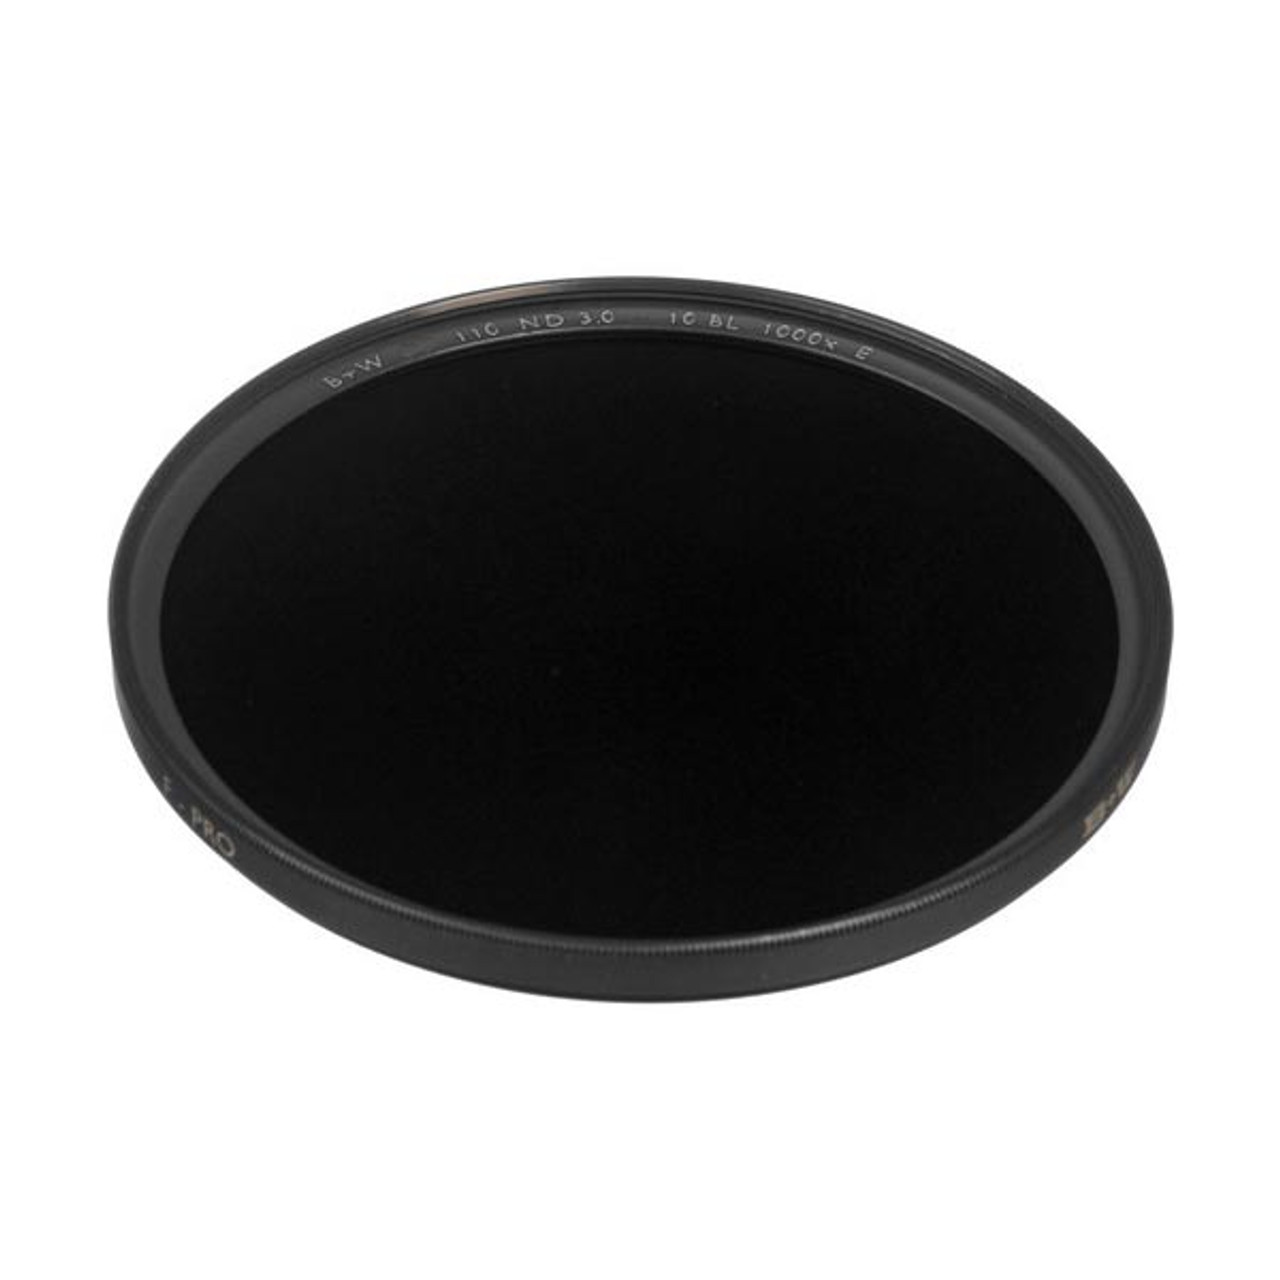 B+W 49mm ND 3.0 - 1000x (110) Filter 10-Stop